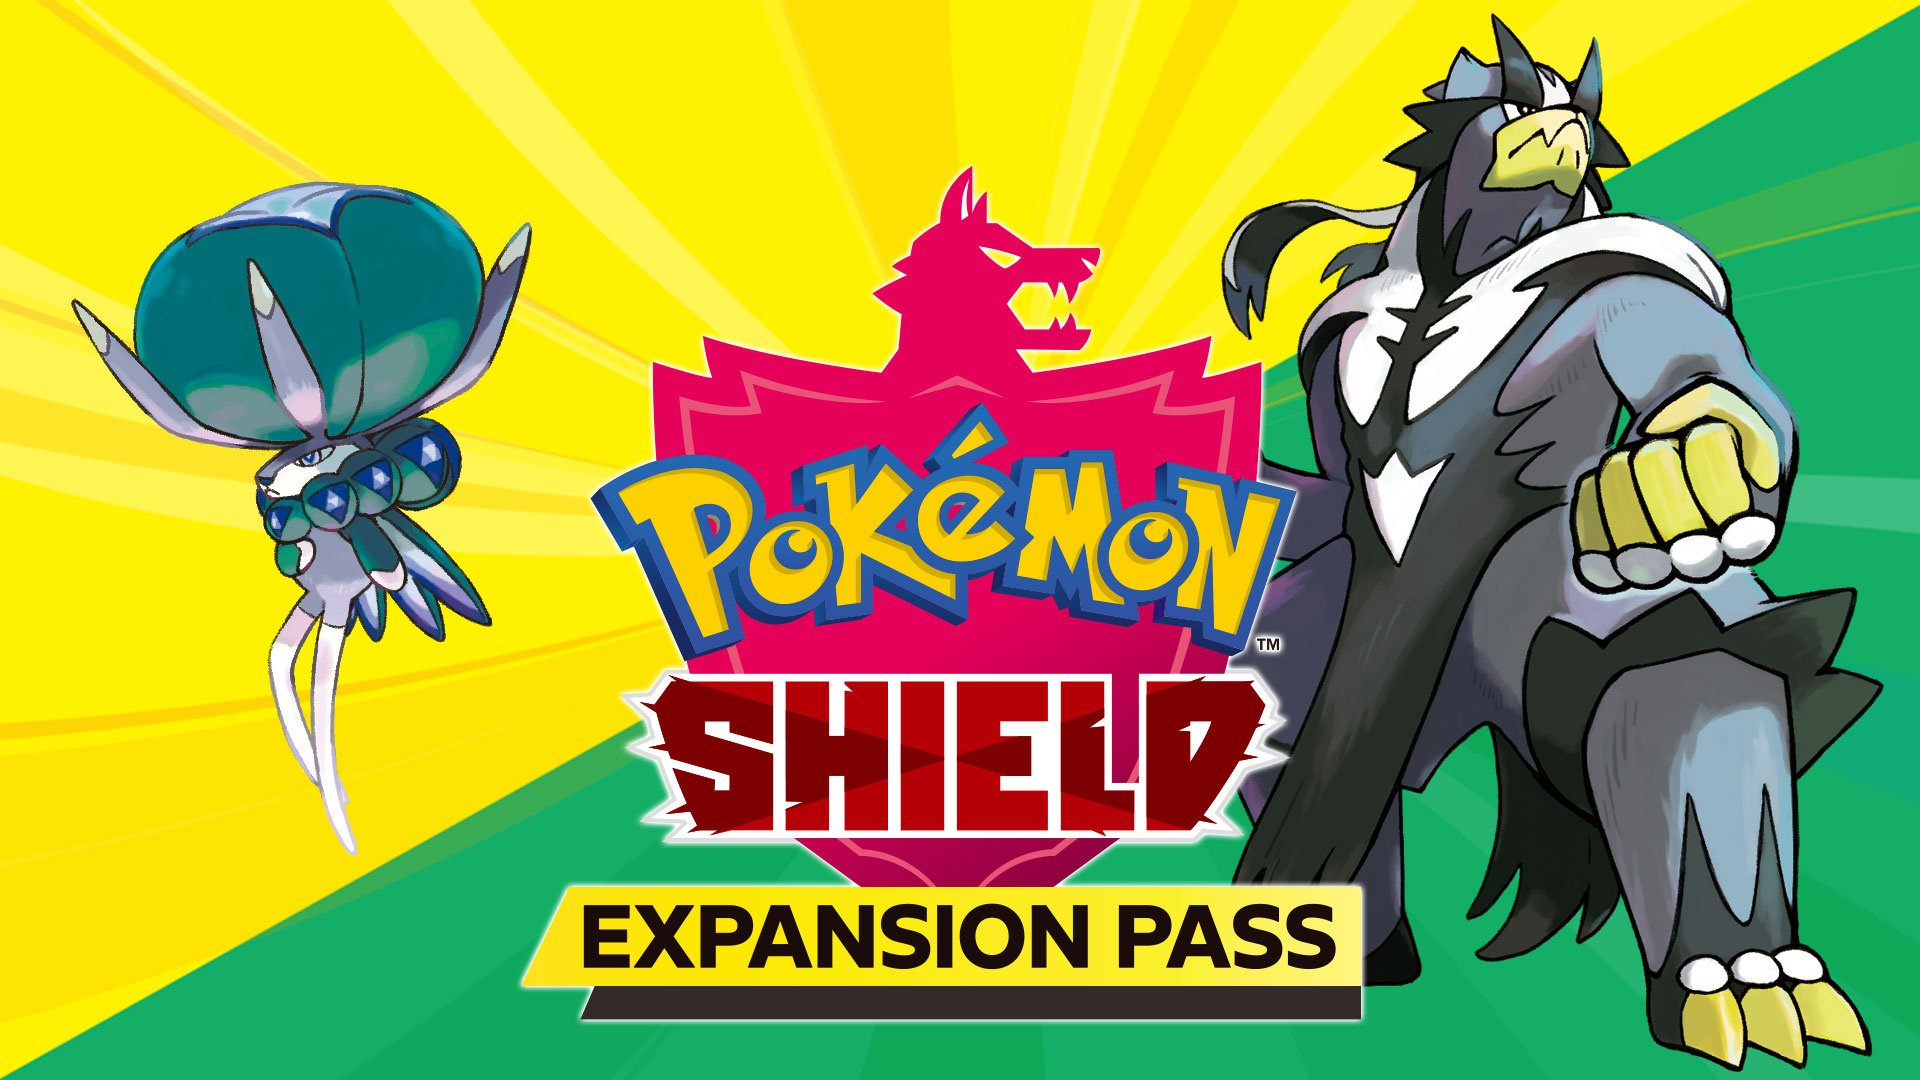 Deals: Get A Half Price Goodie With Your Purchase Of Pokémon Sword and Pokémon  Shield Expansion Pass - Nintendo Life